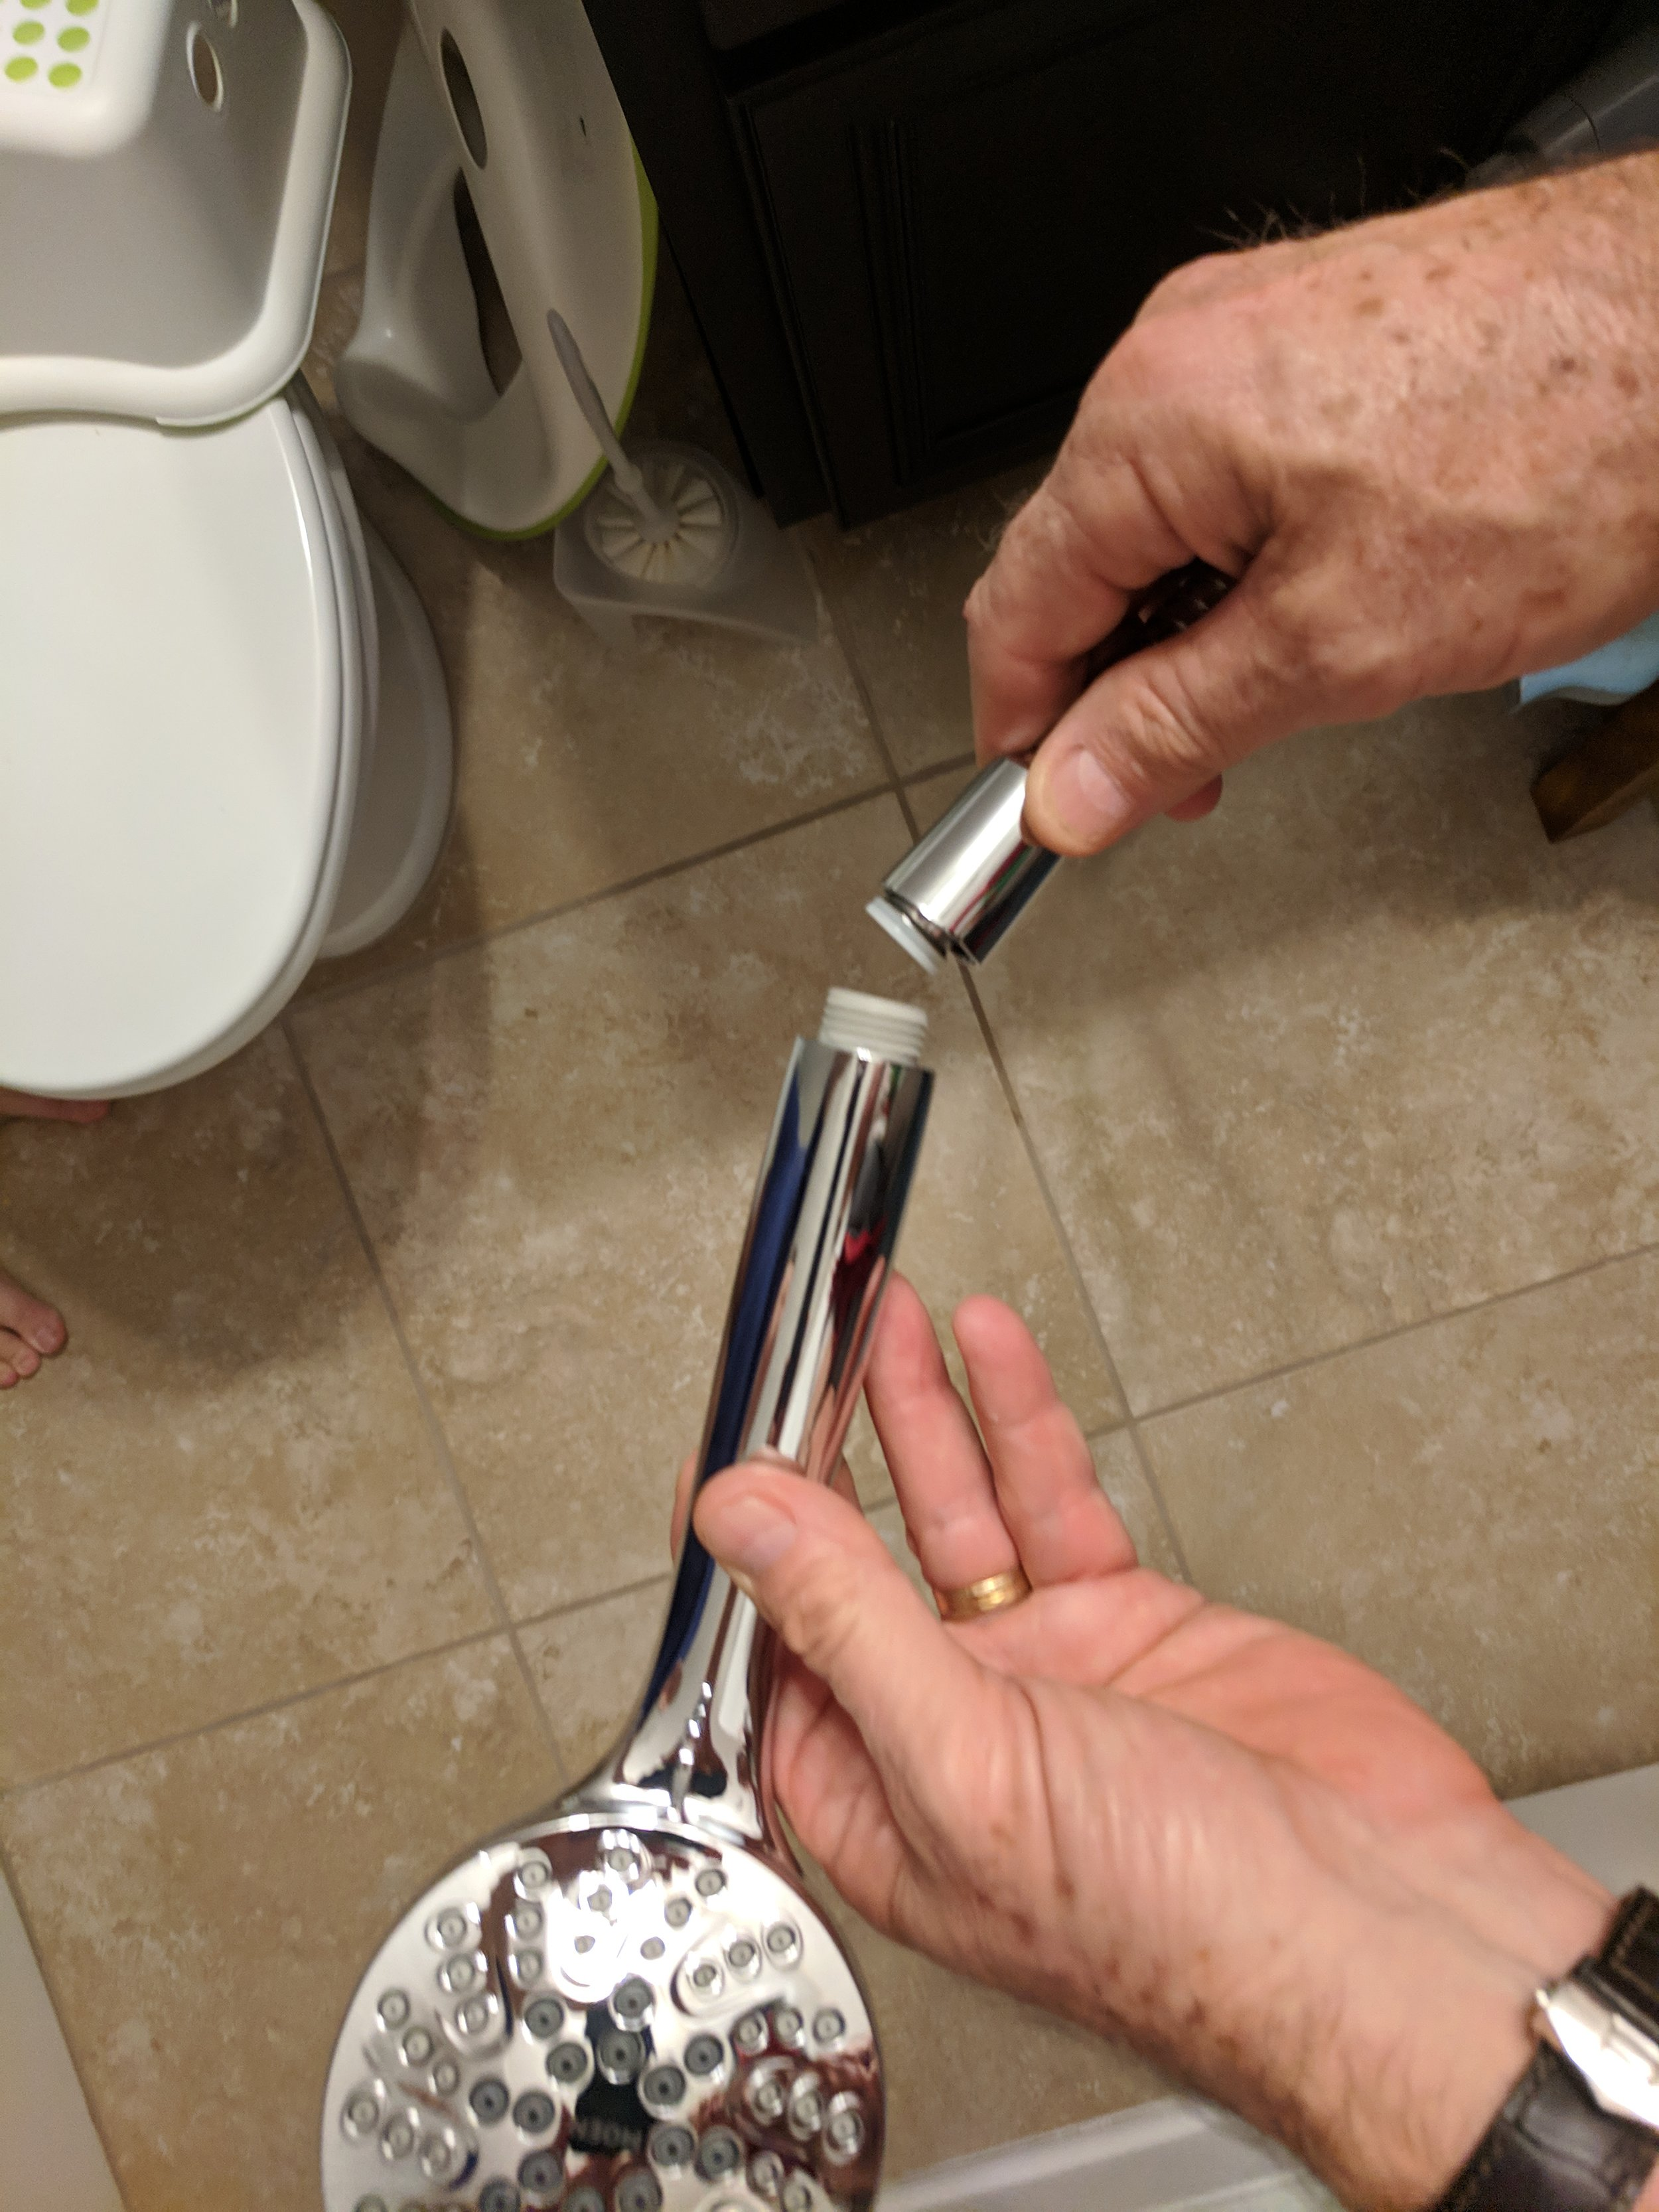 Connect the hose to shower head.